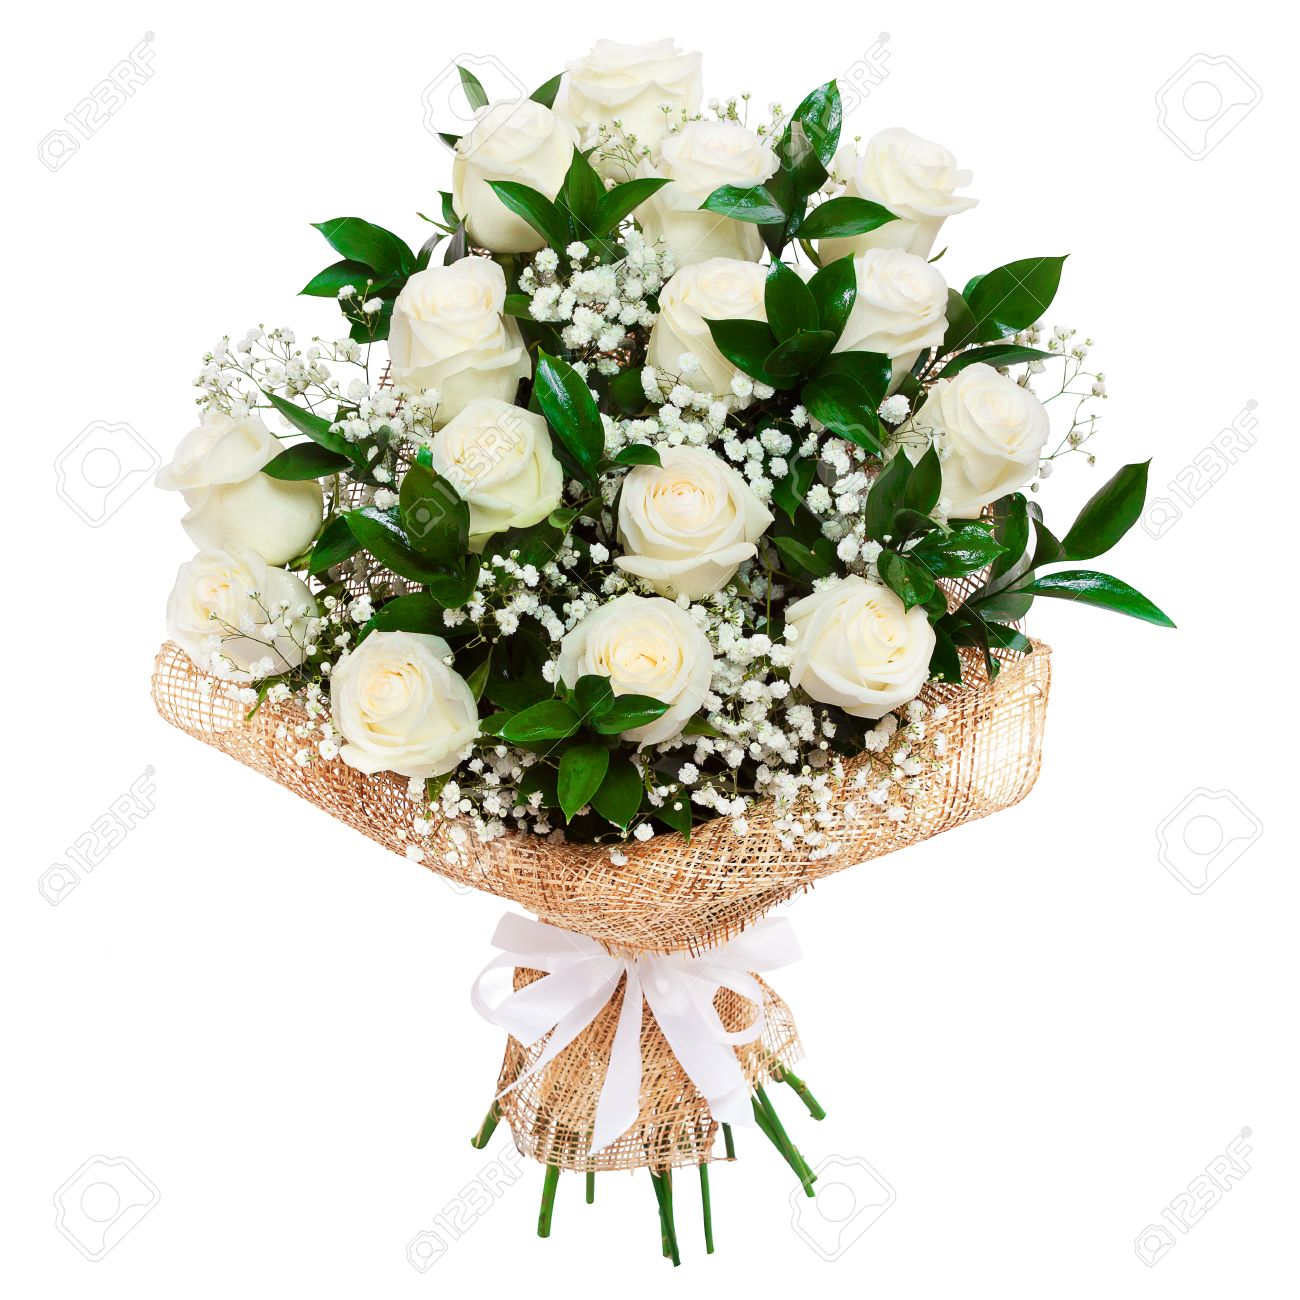 Funeral flowers images stock pictures royalty free funeral funeral flowers bouquet of beautiful white roses isolated on white a great gift to dhlflorist Image collections